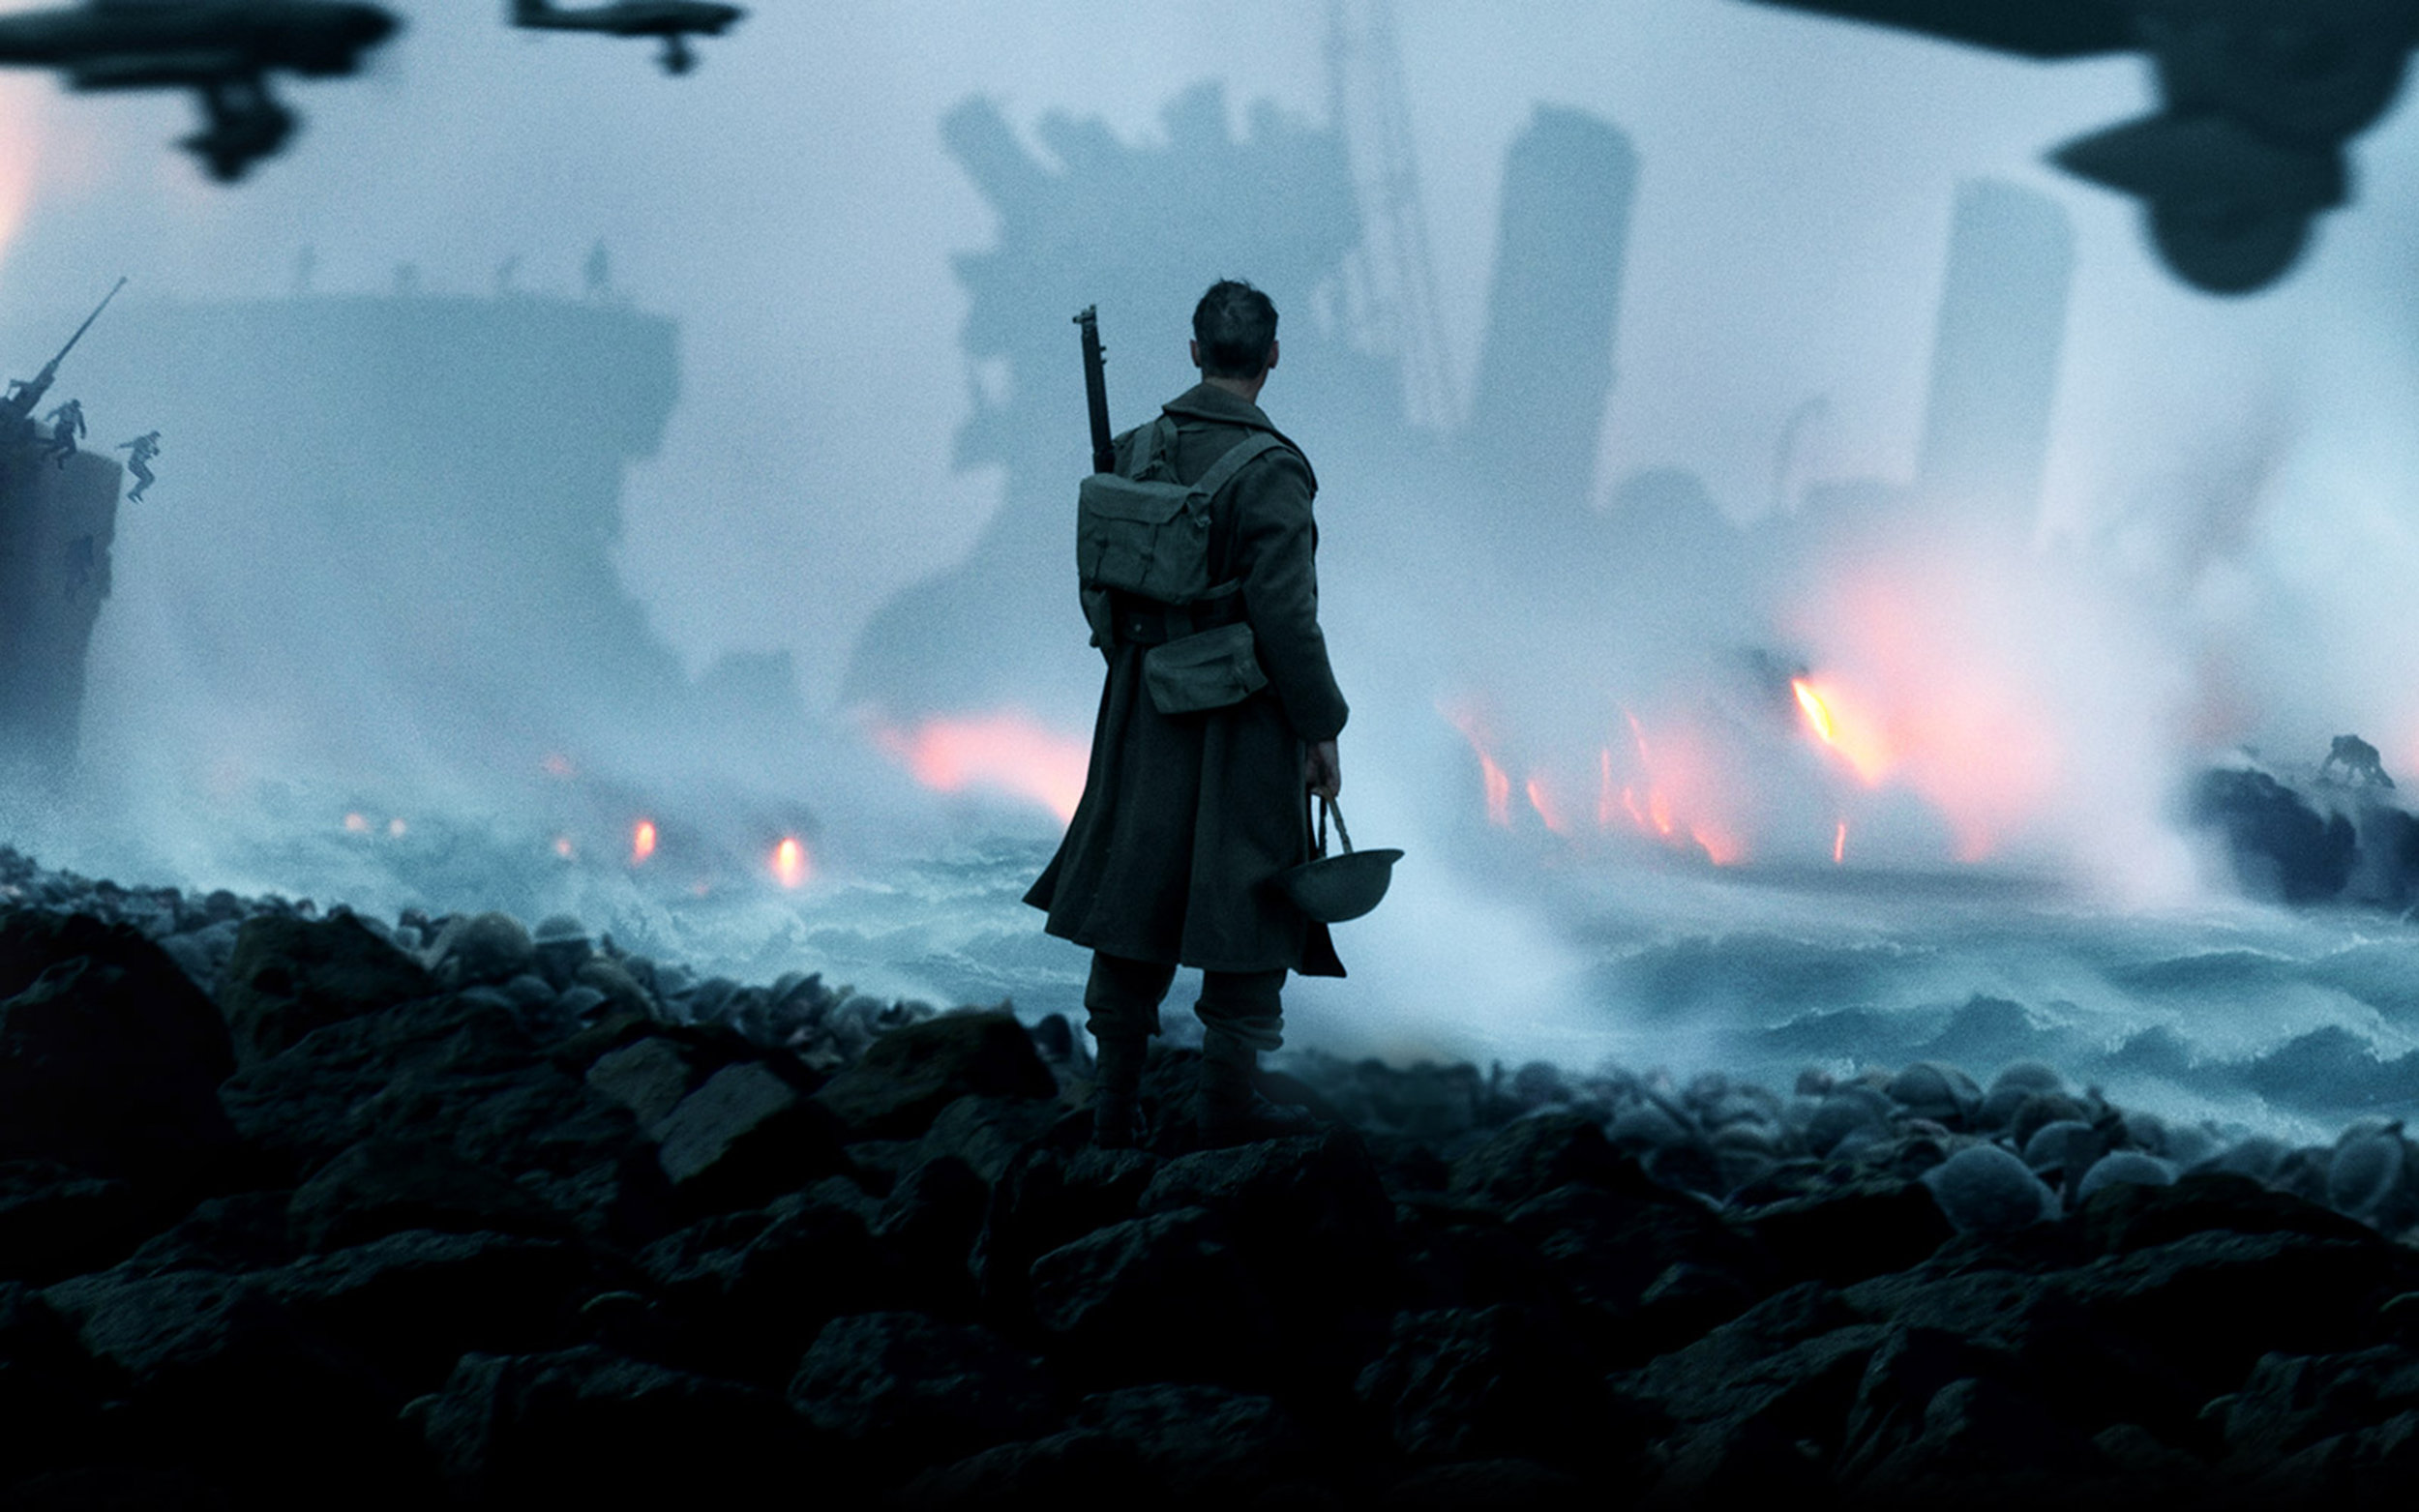 dunkirk-2017-movie-4k.jpg